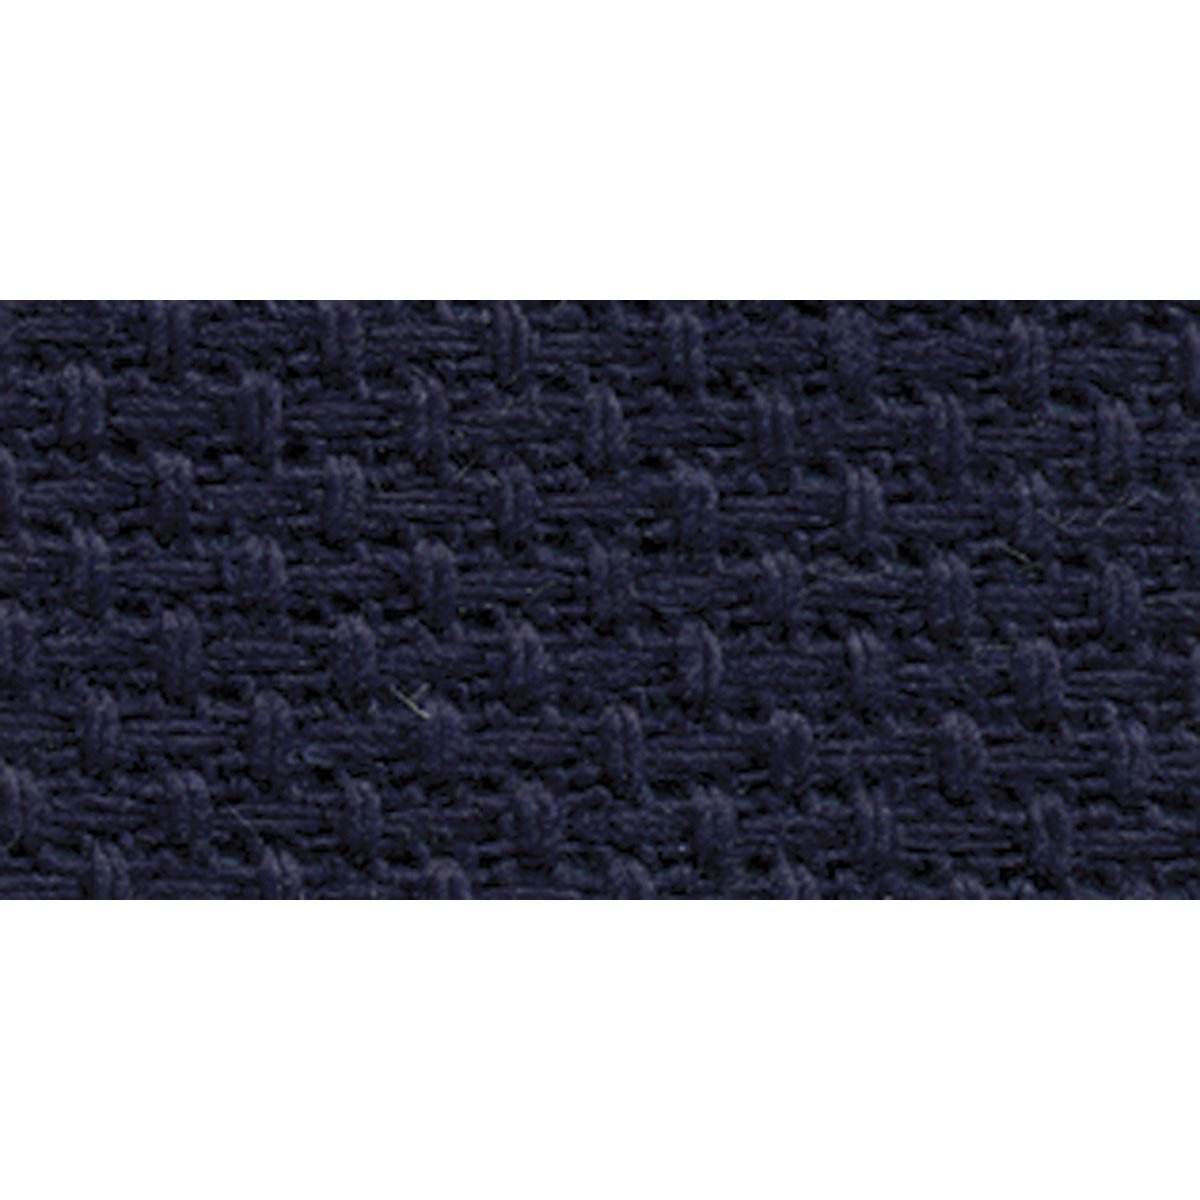 DMC GD1436-5225 Classic Reserve Gold Label Aida Fabric Box, Navy, 14 Count Notions - In Network